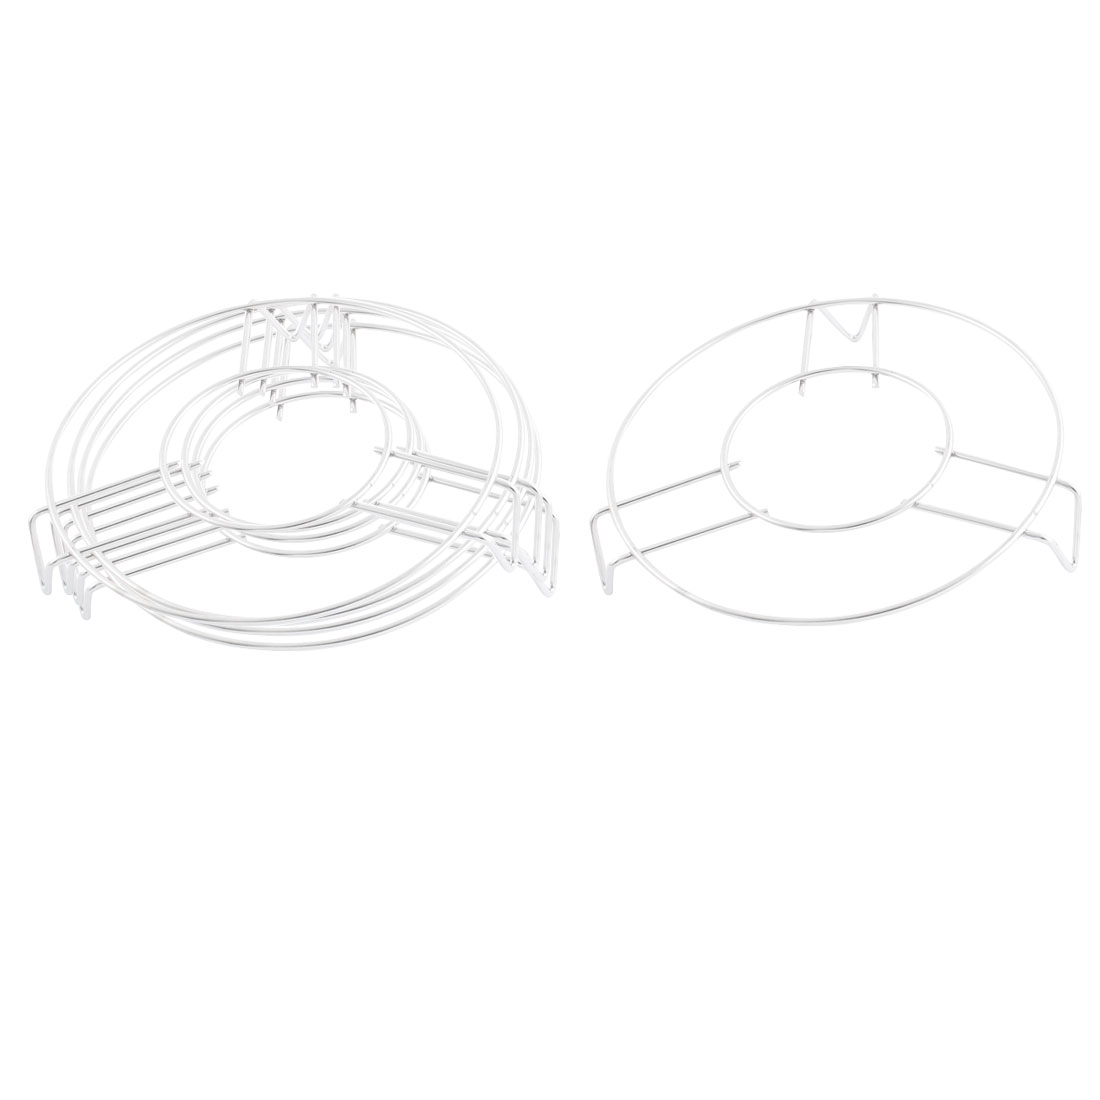 Household Kitchen Metal Wire Food Steaming Steamer Rack Stand Silver Tone 16cm Diameter 5pcs